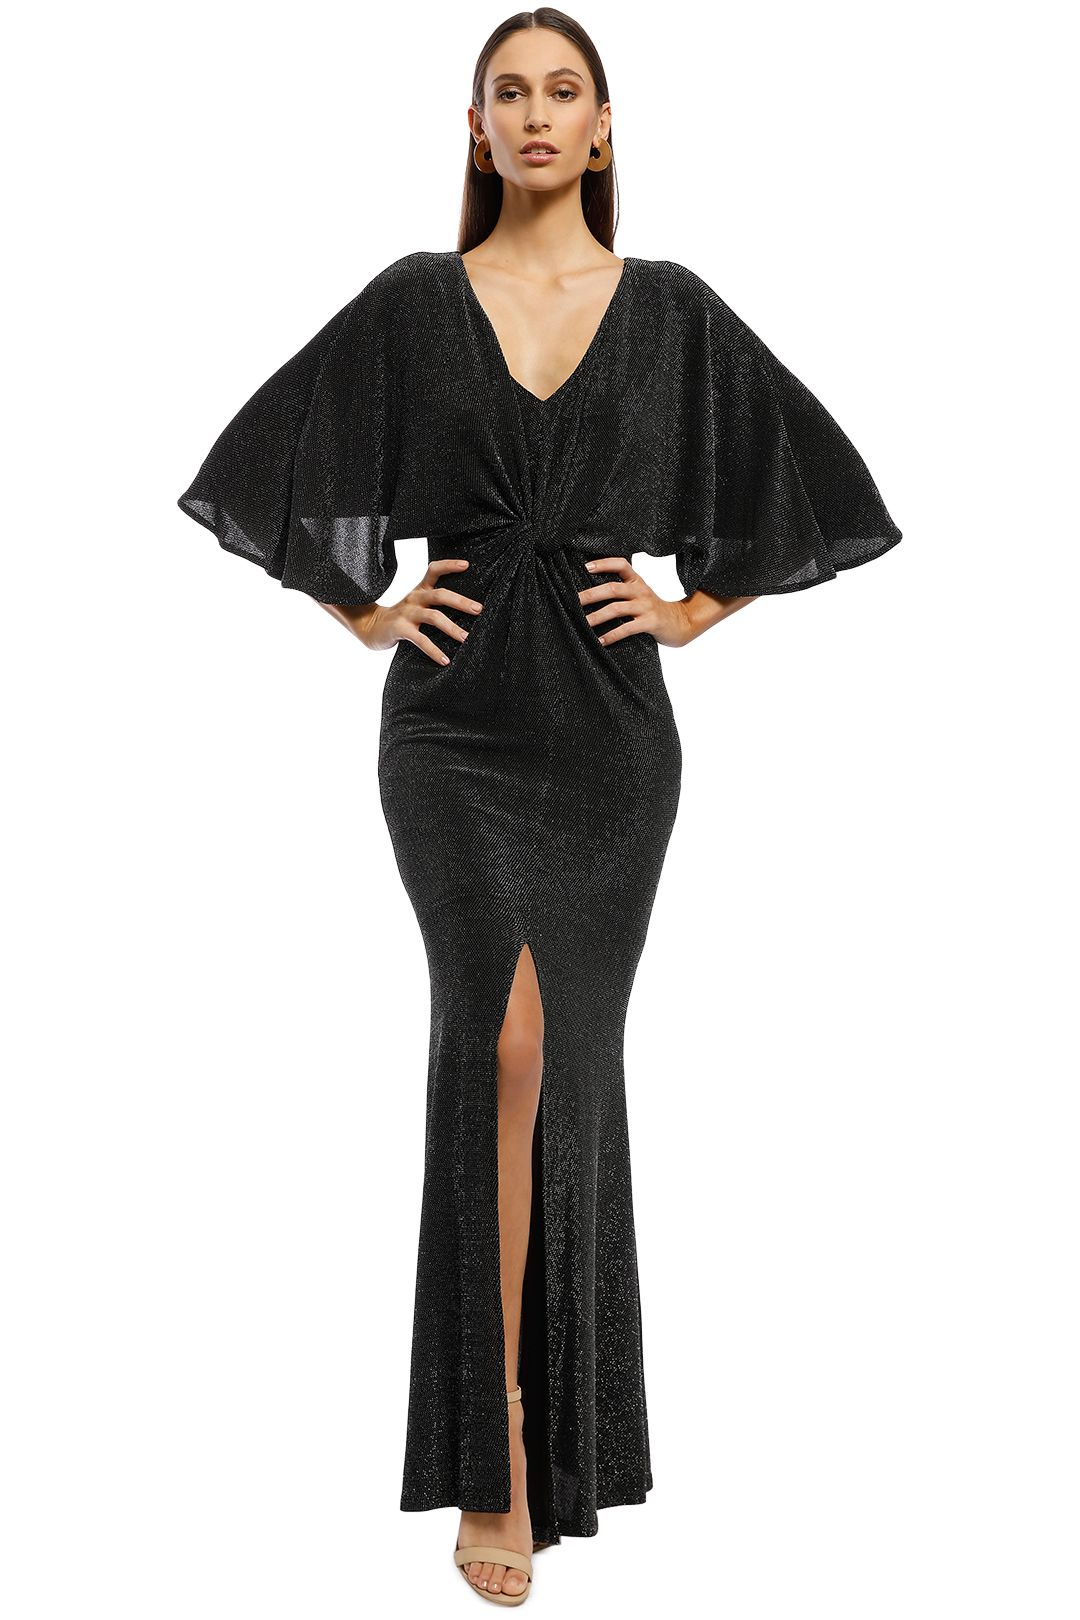 Montique - Diva Metallic Gown - Charcoal - Front